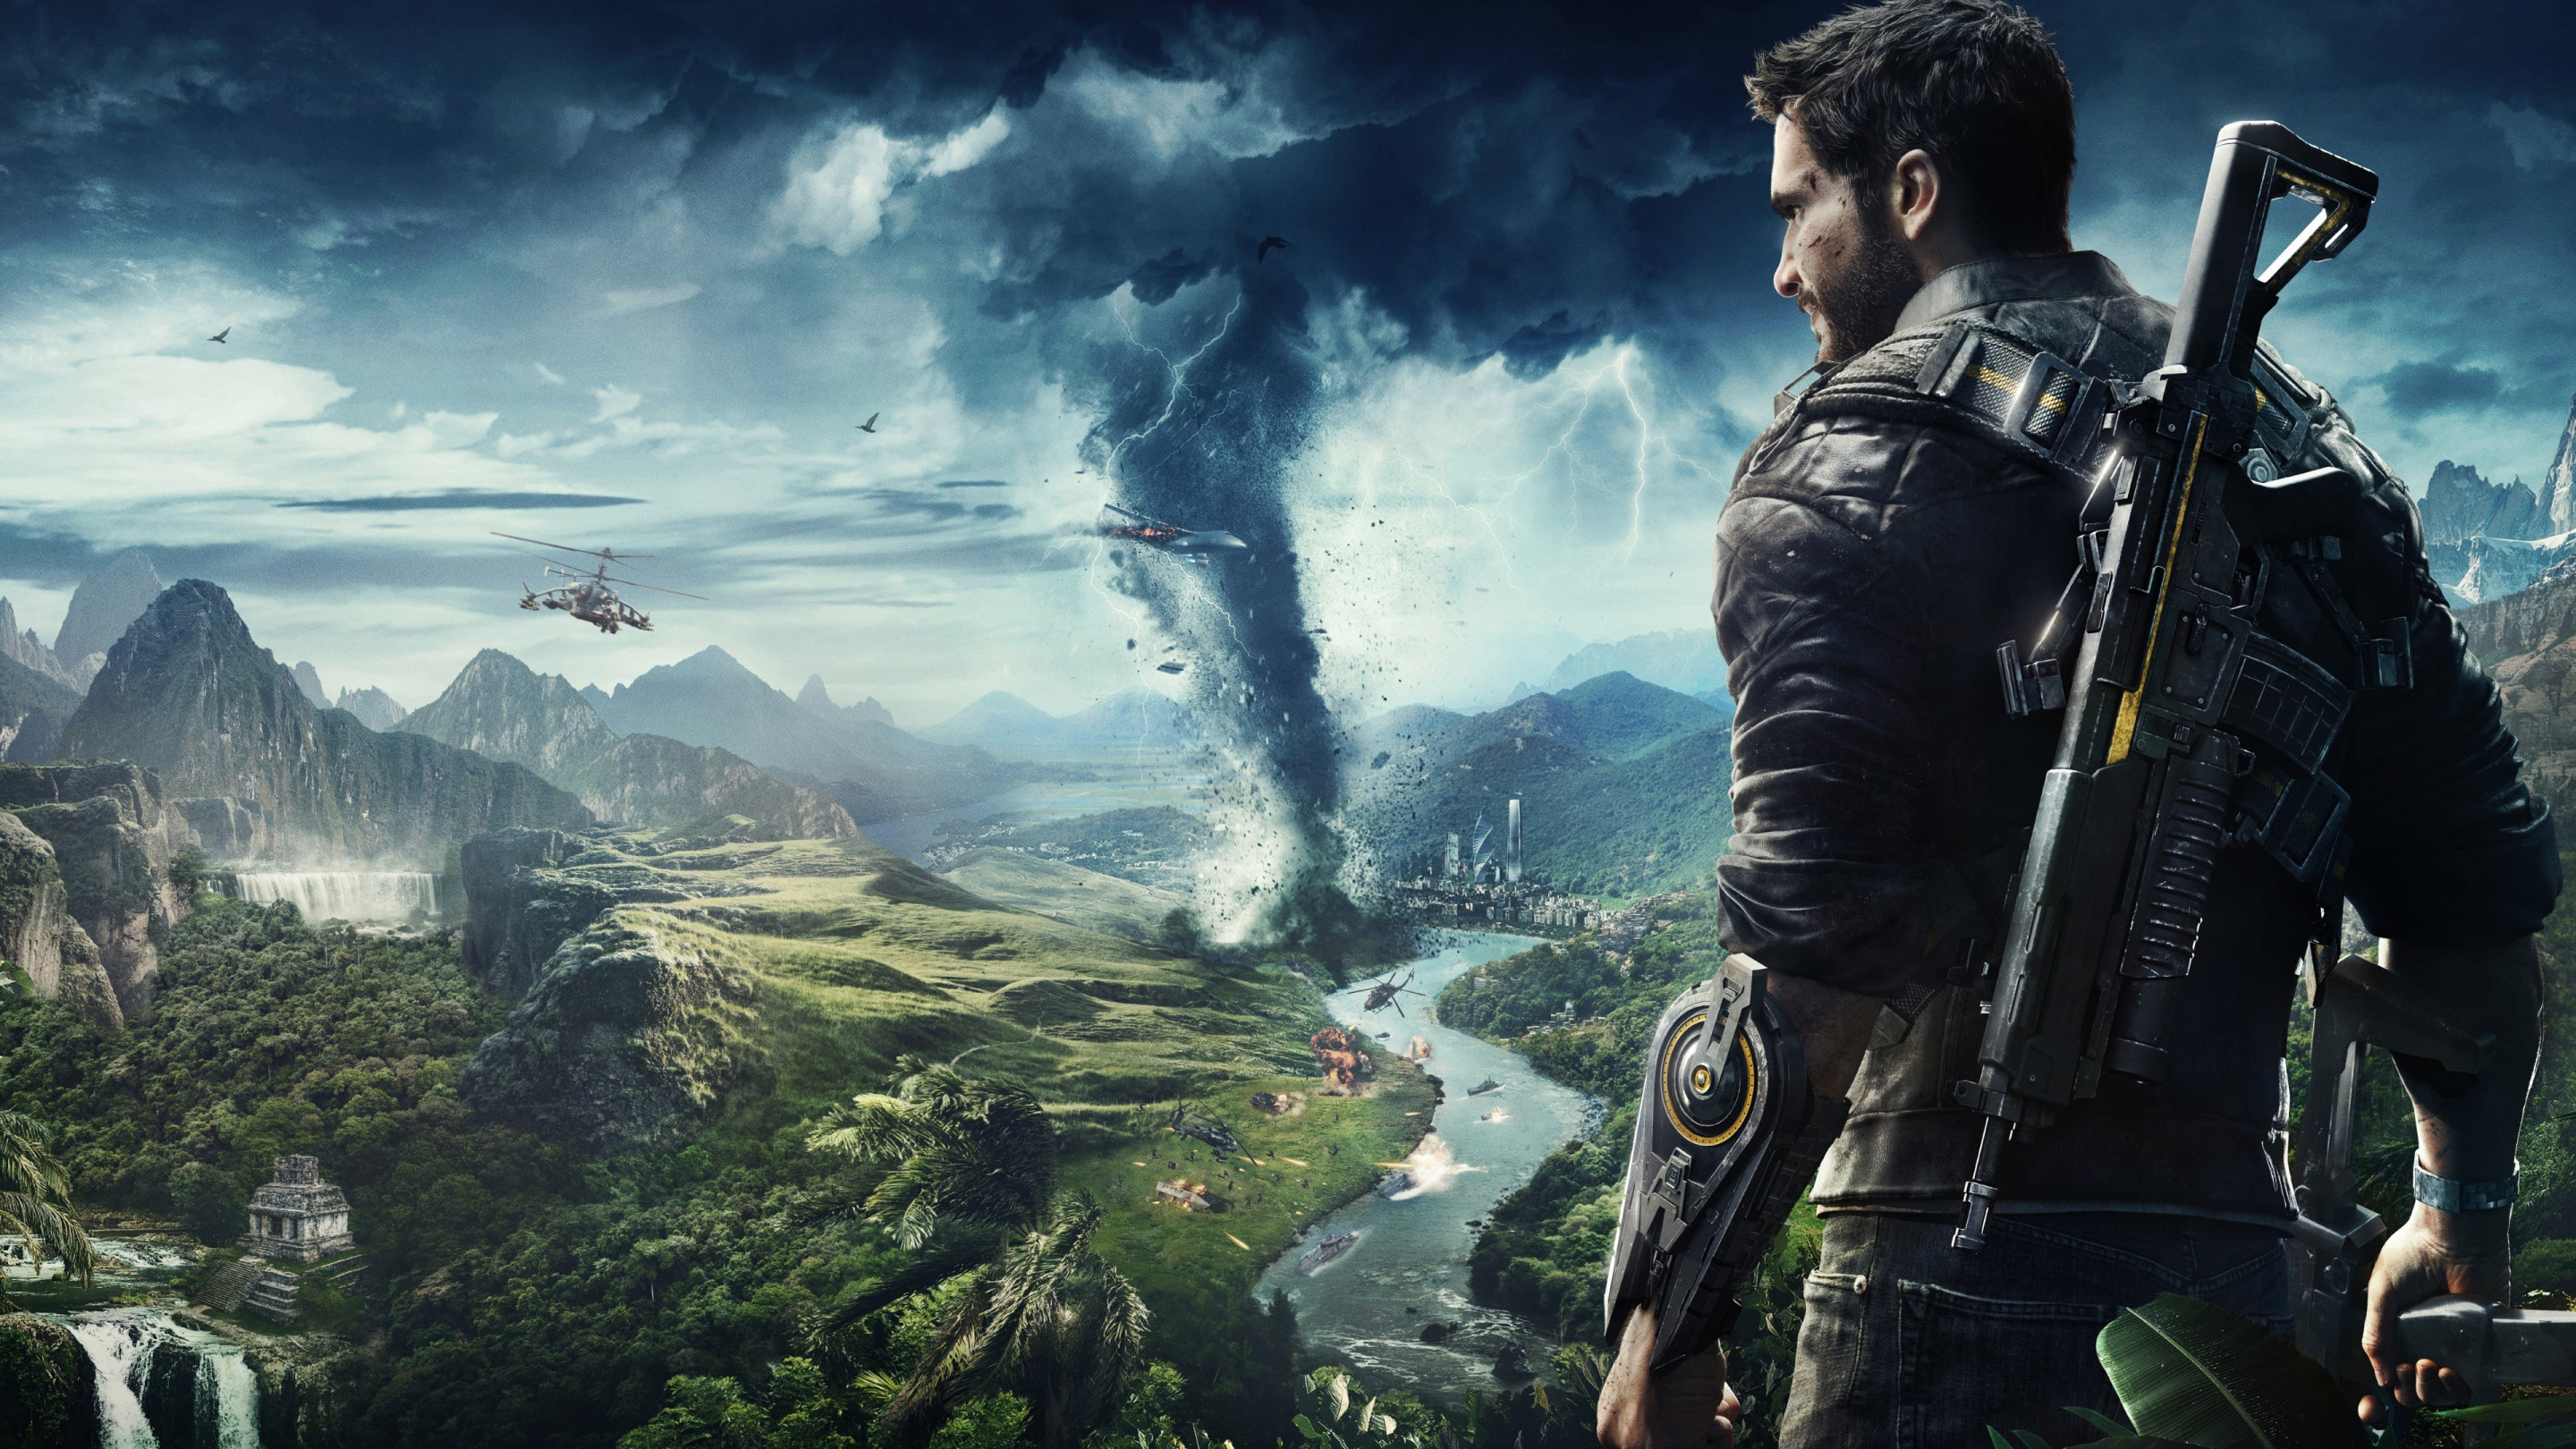 Just Cause 4 wallpaper 2880x1620